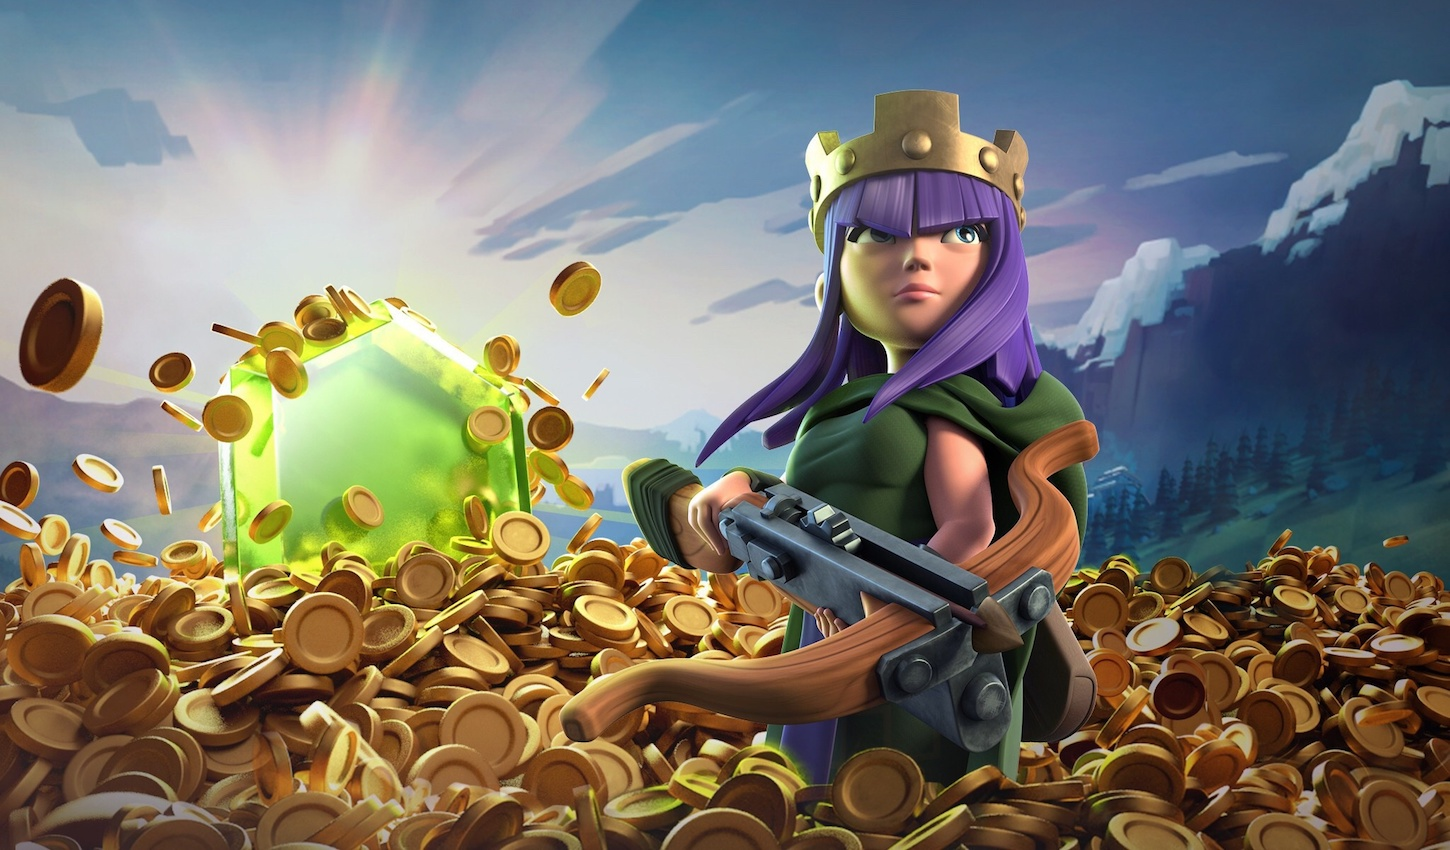 Clash of Clans Earns $27 Million in One Week as Revenue Grows 145%  Following Season Pass Debut